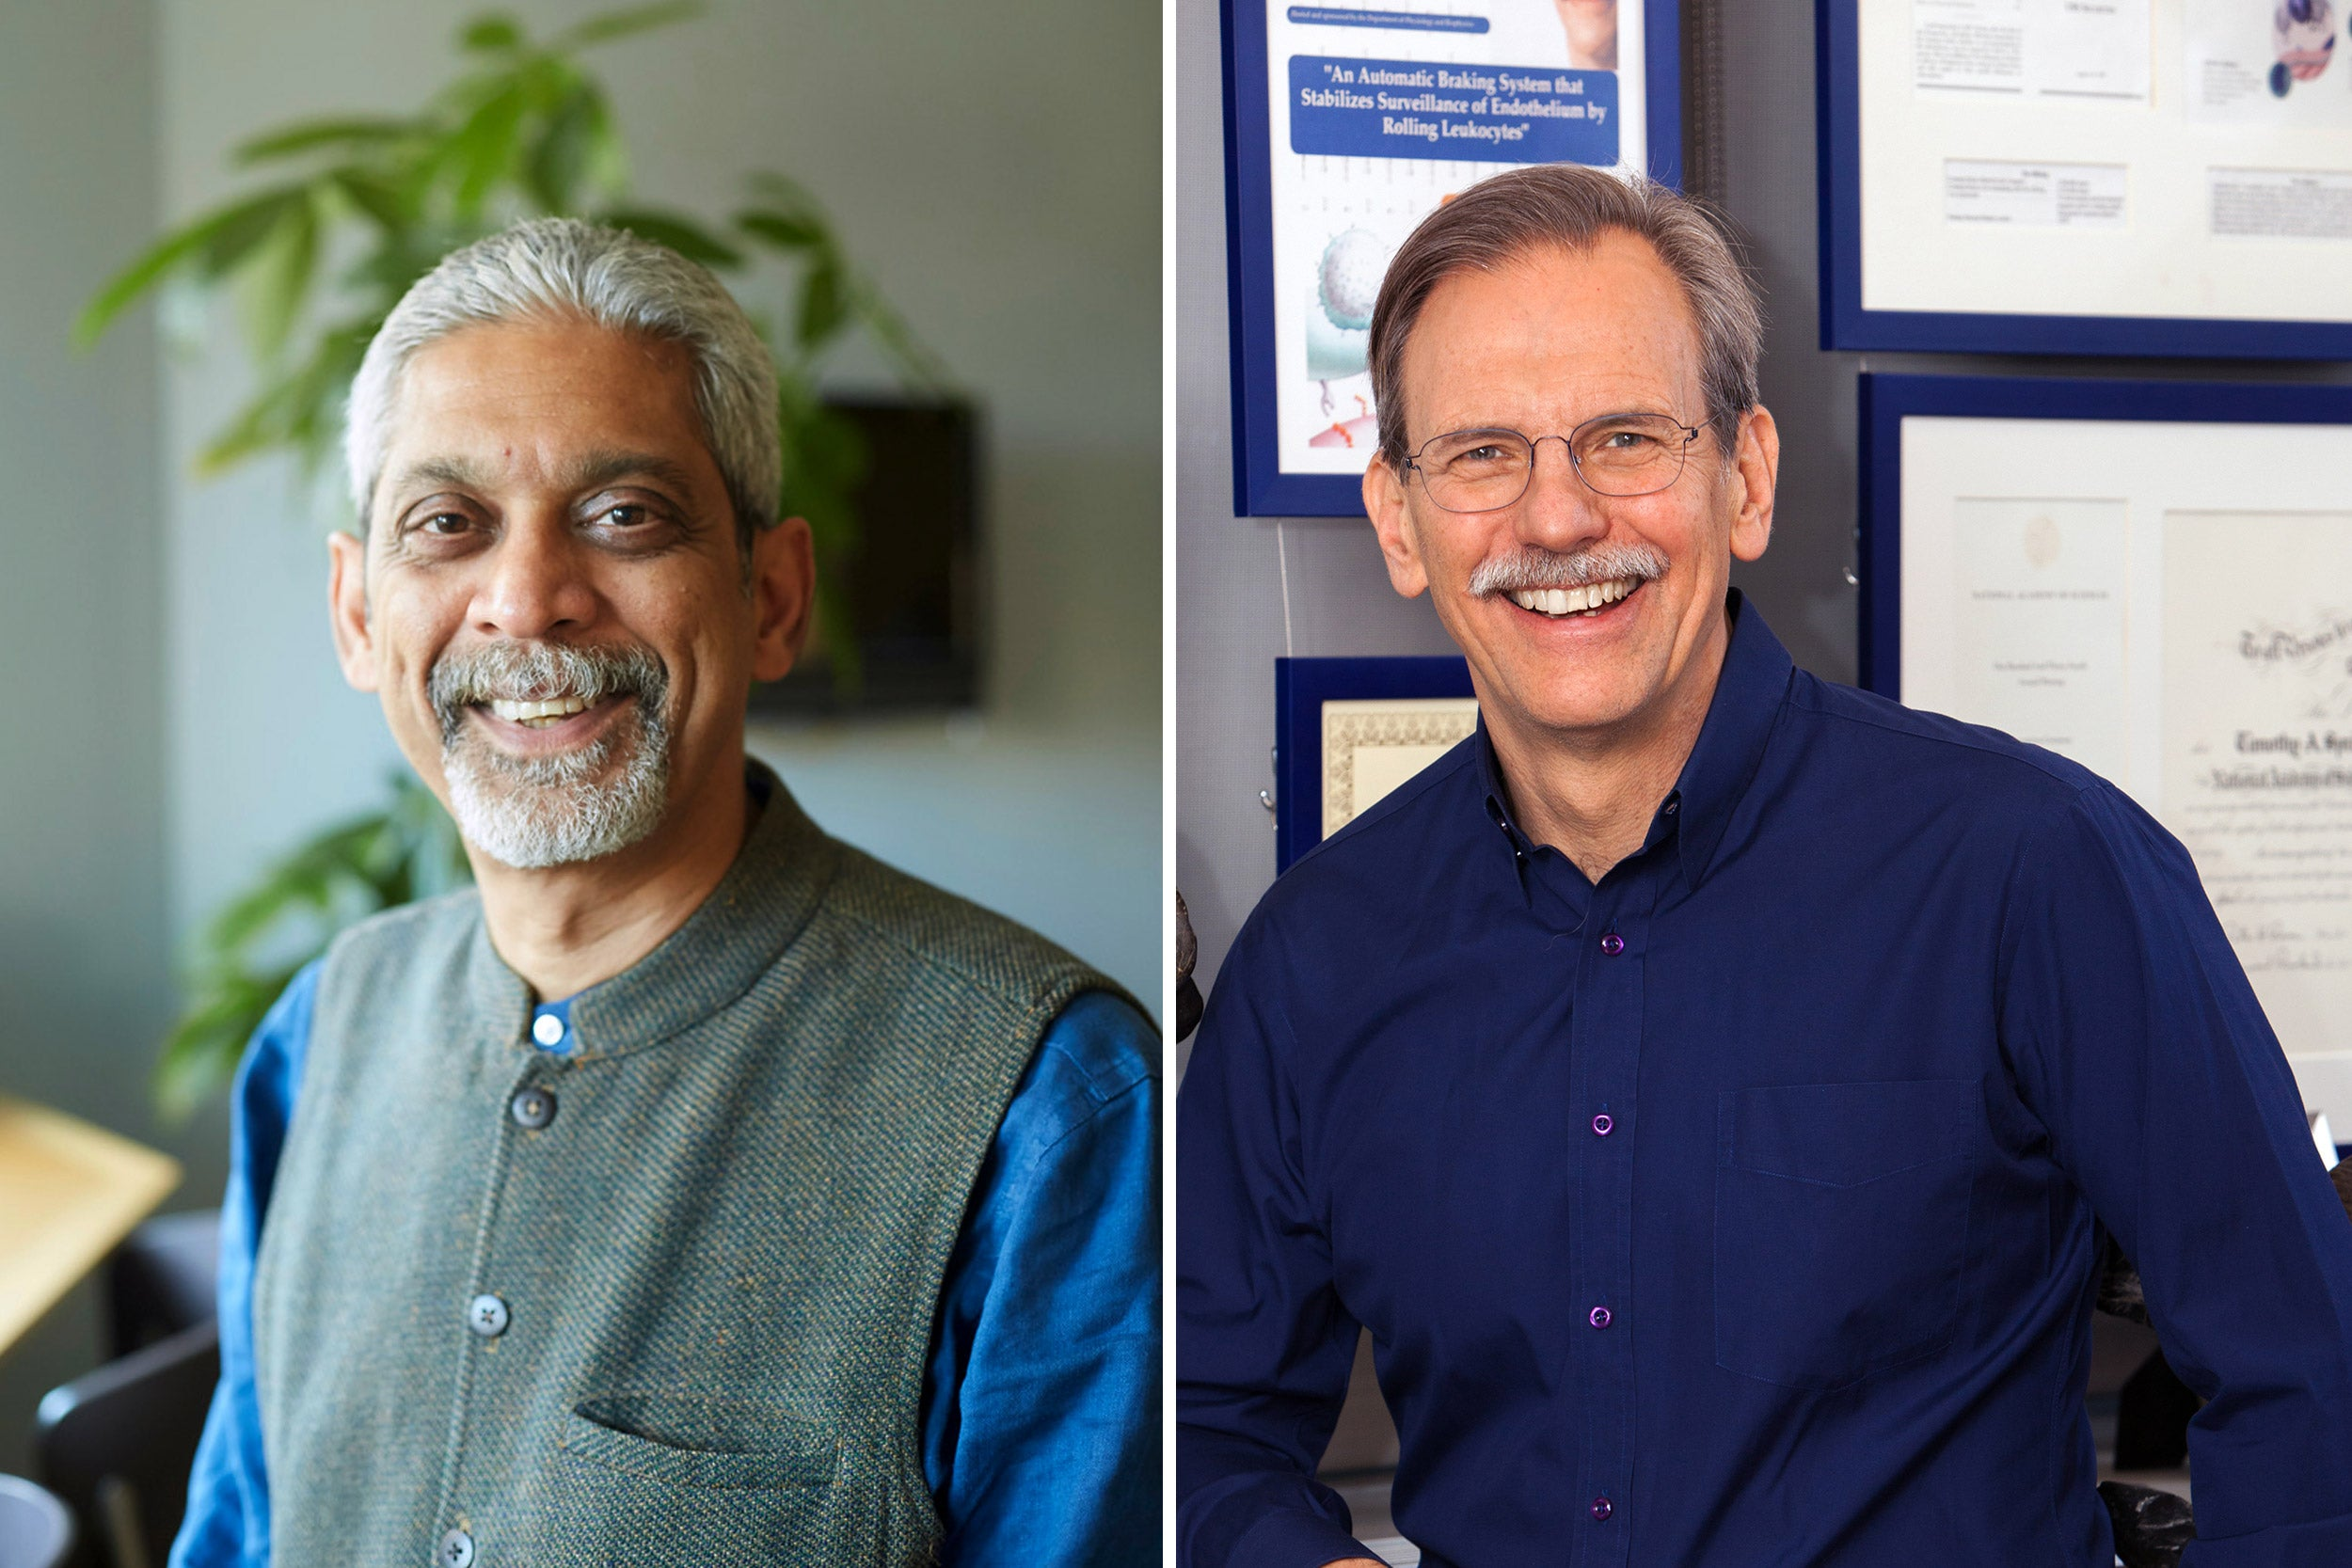 Harvard Medical School researchers Vikram Patel and Timothy Springer, have received the Canada Gairdner Award.